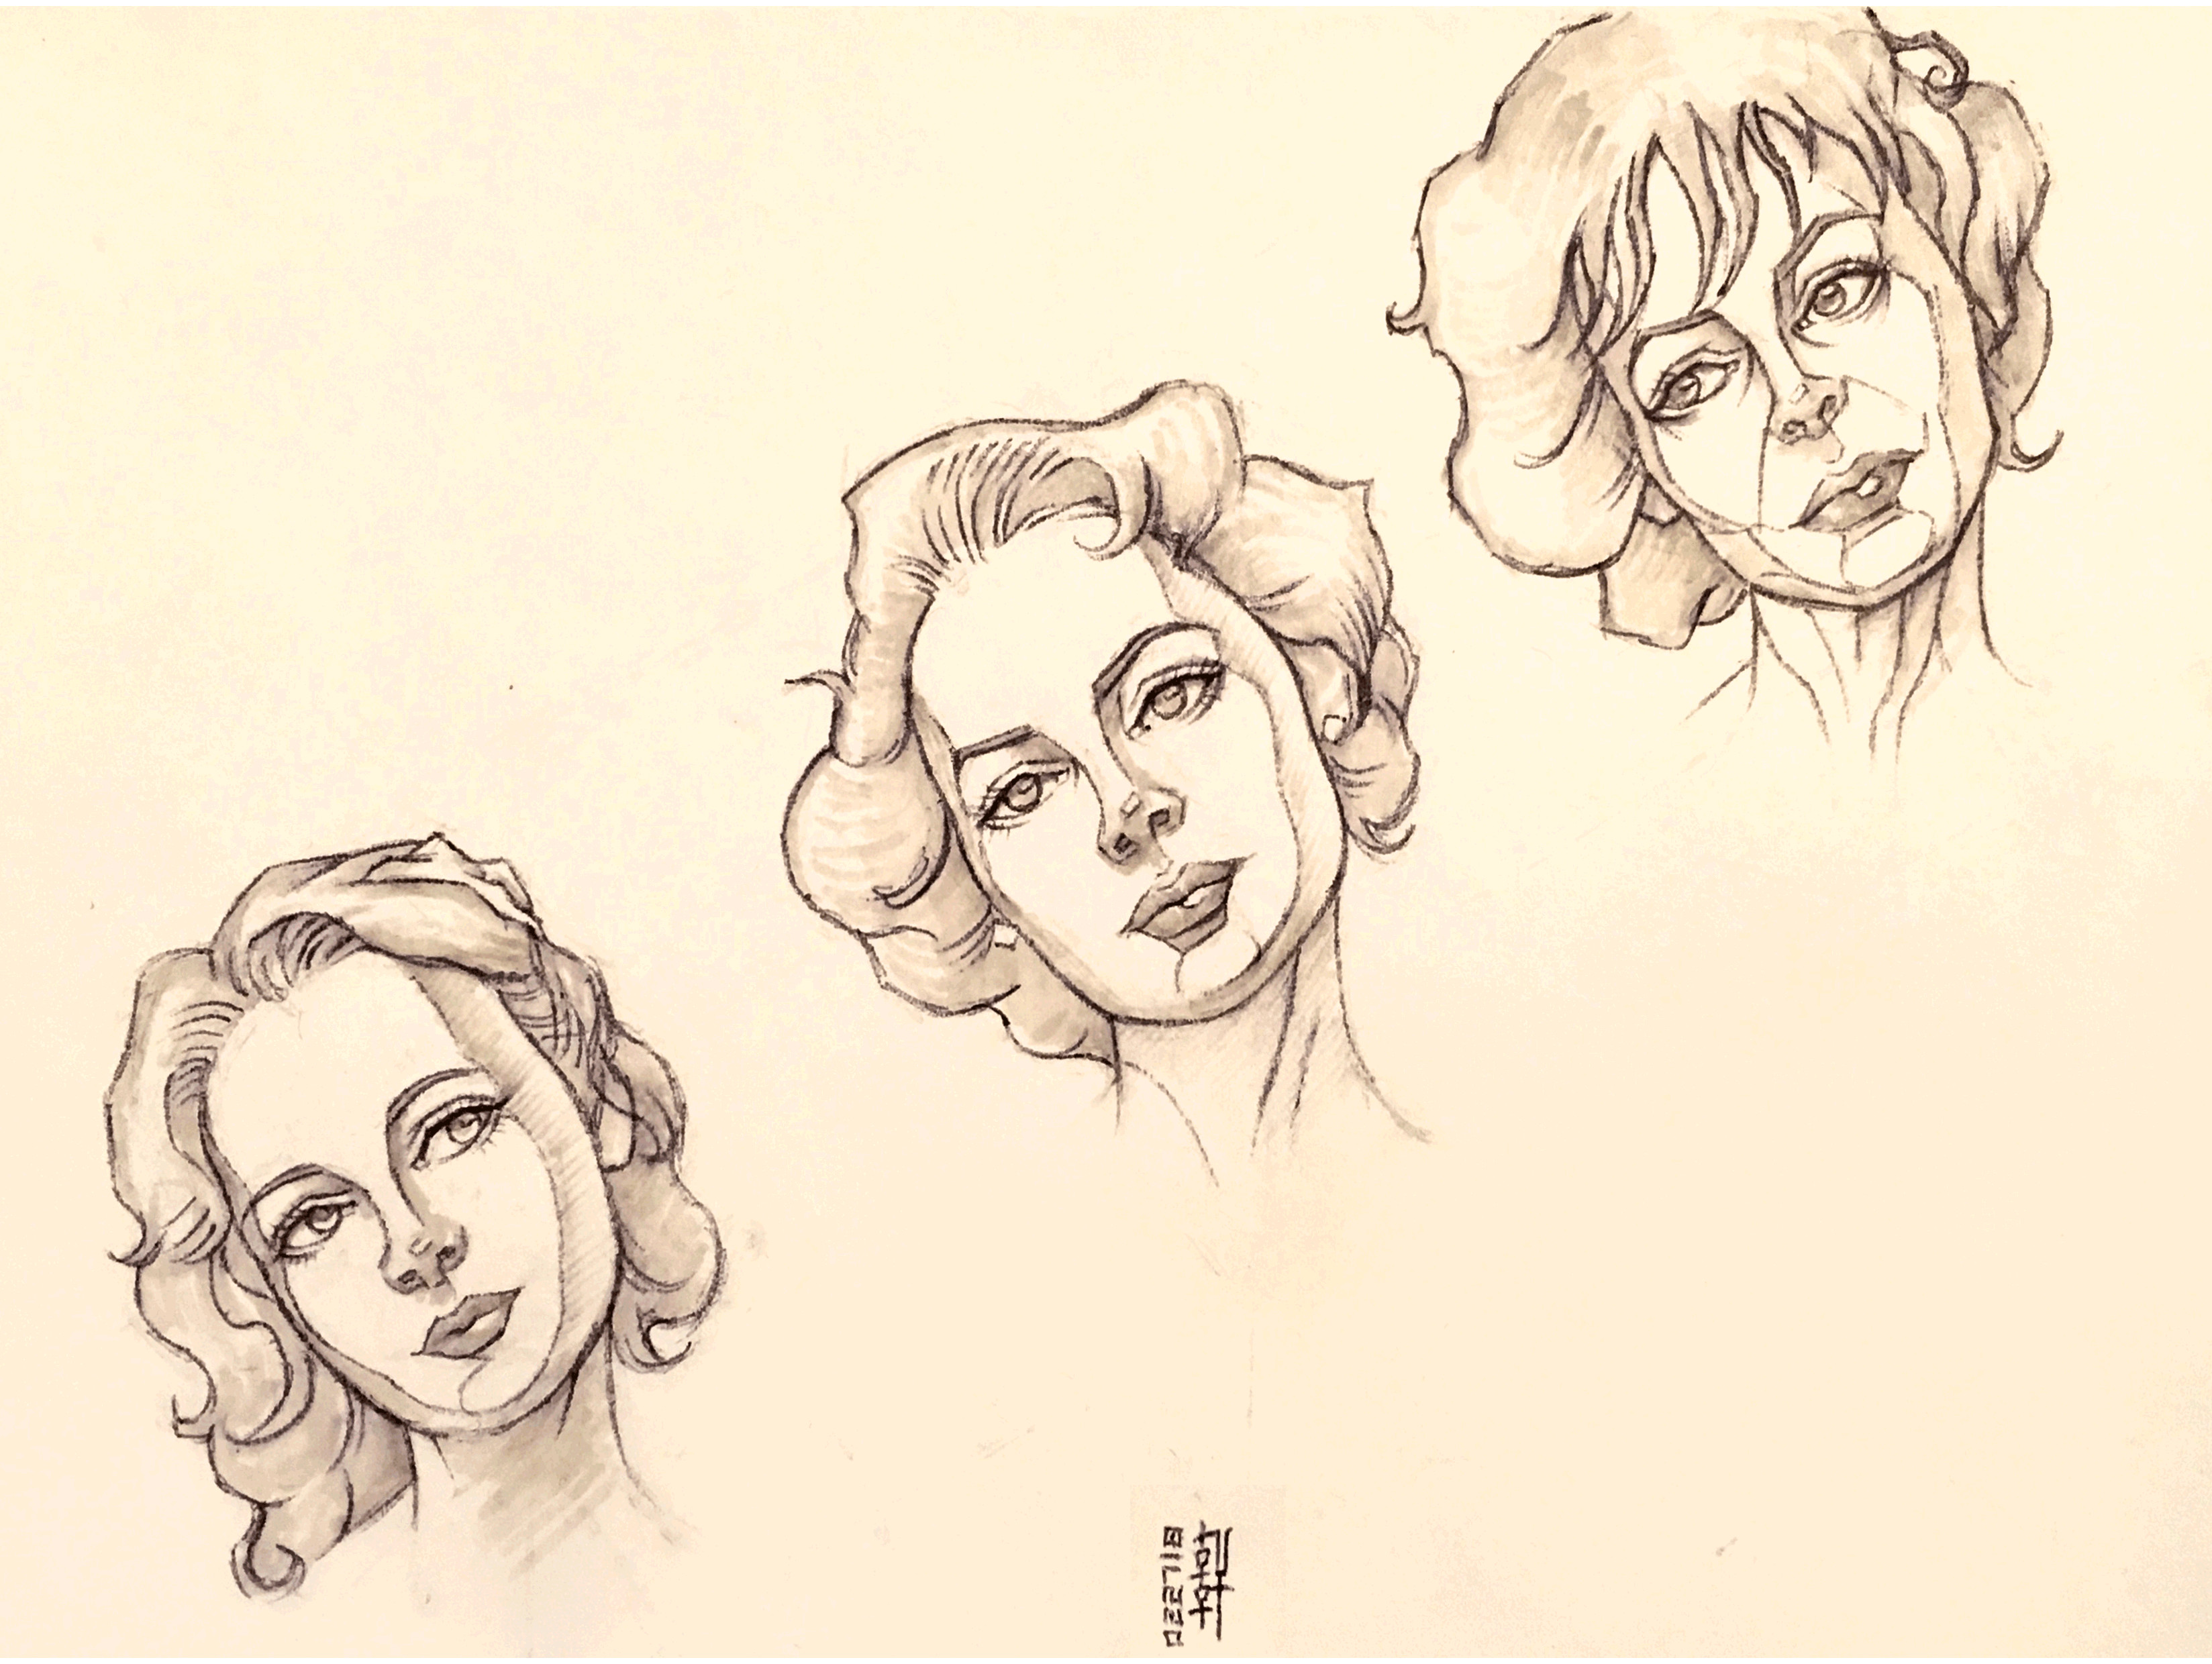 Day #15,160 - The Three Ages of Woman Sketch